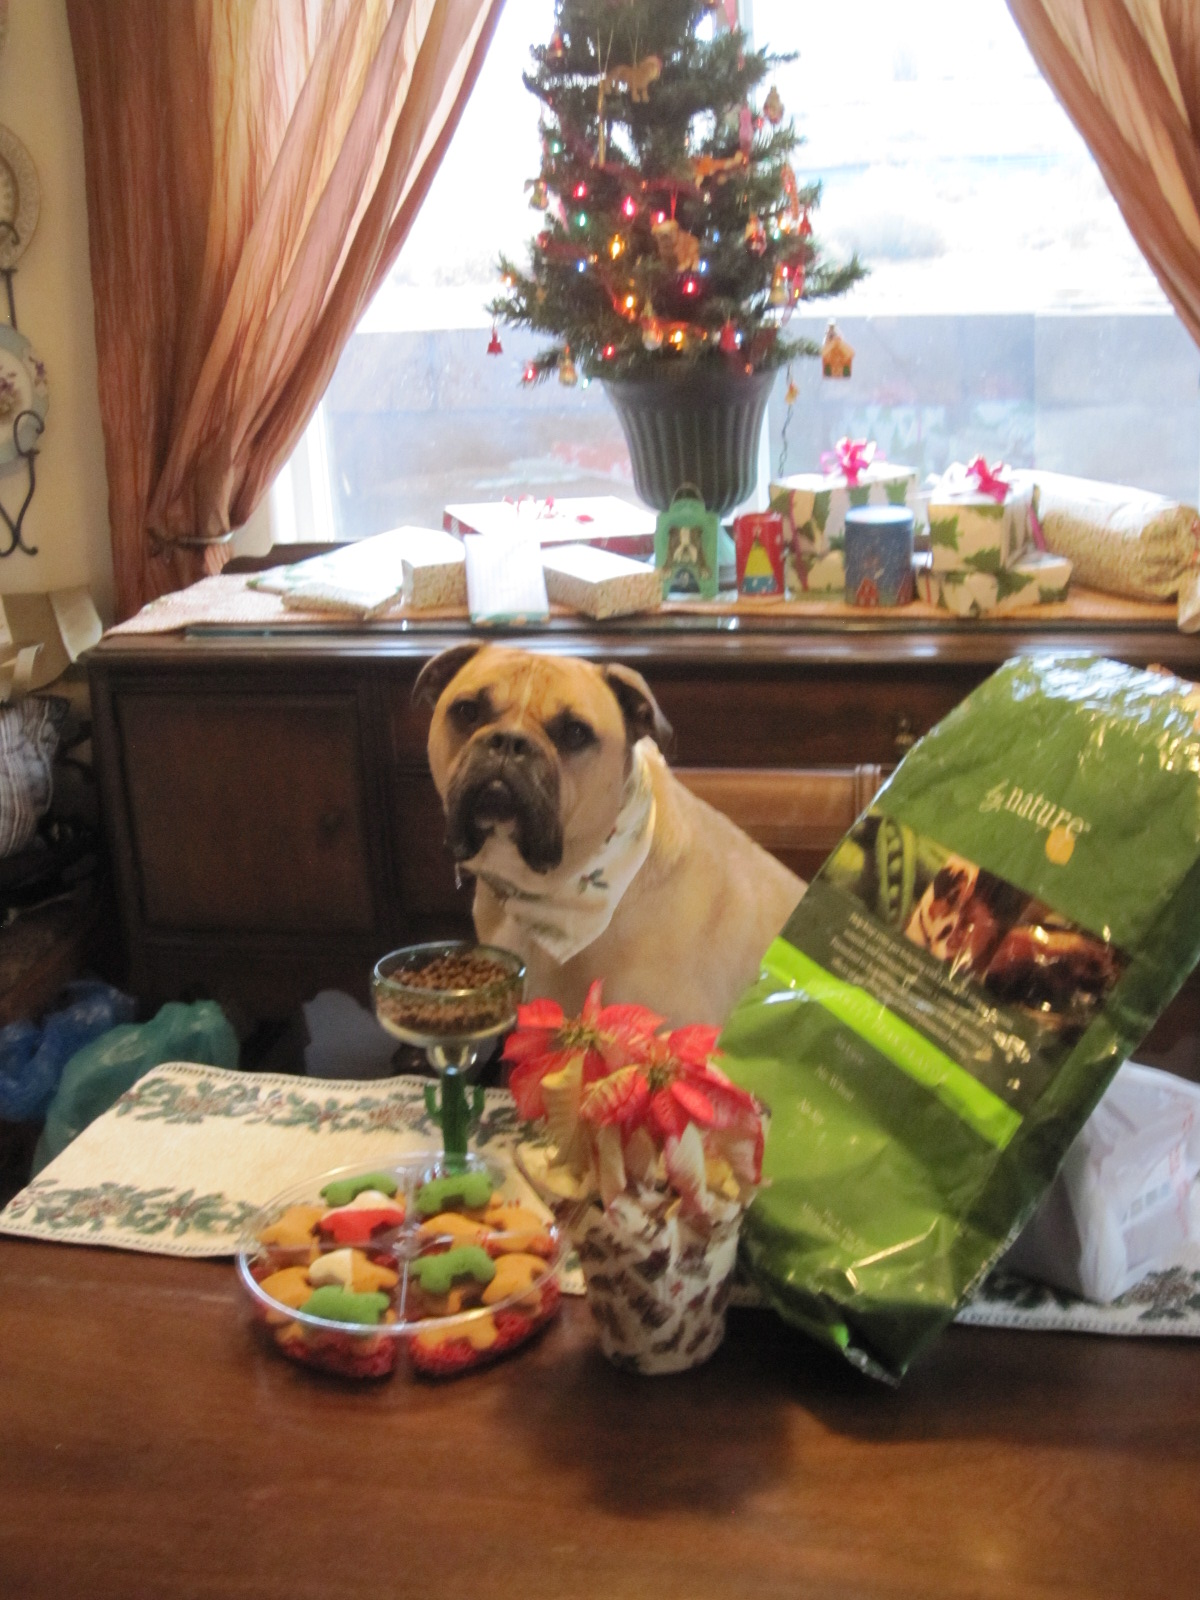 Christmas Dinner Ideas for Dogs and Cats | STYLETAILS |Christmas Vacation Dog Dinner